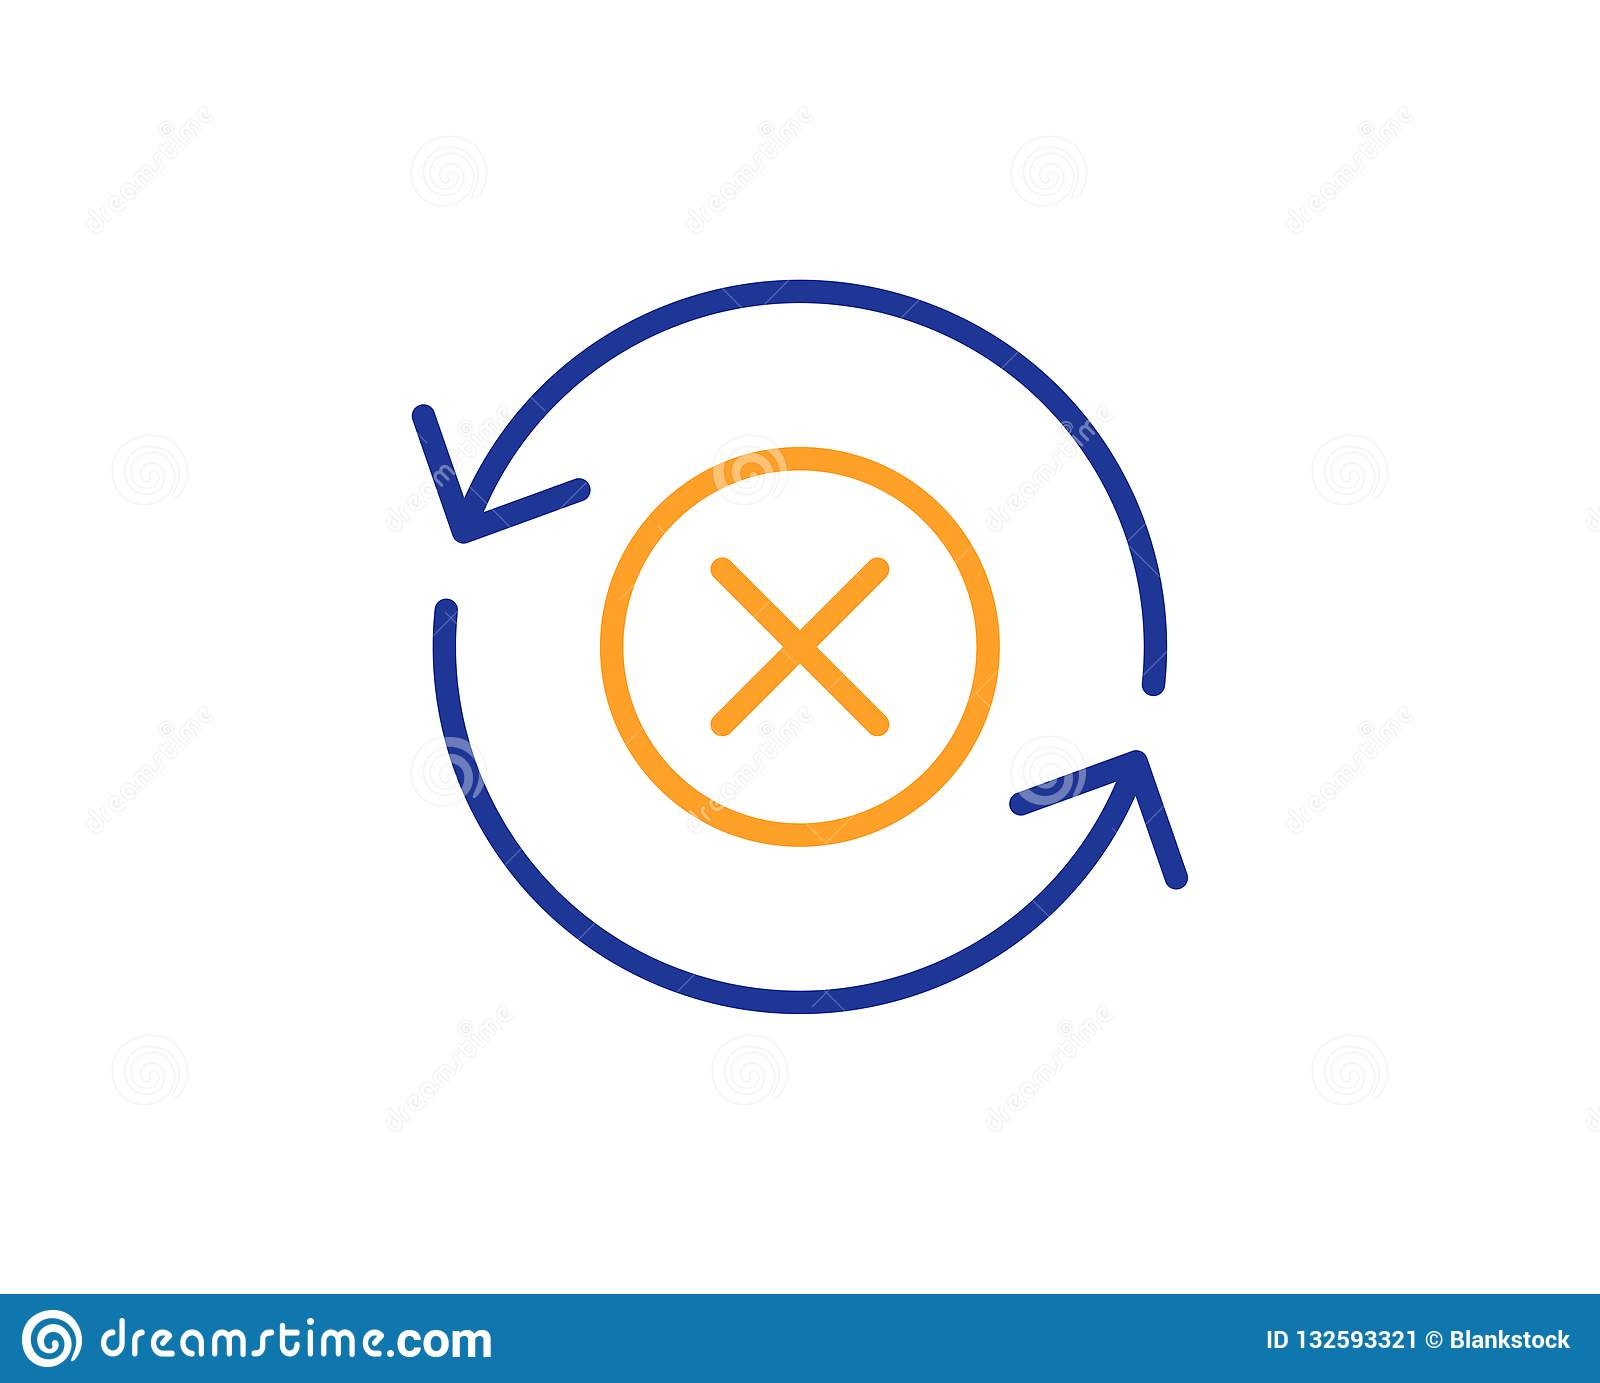 Reject refresh line icon. Decline update sign. Vector